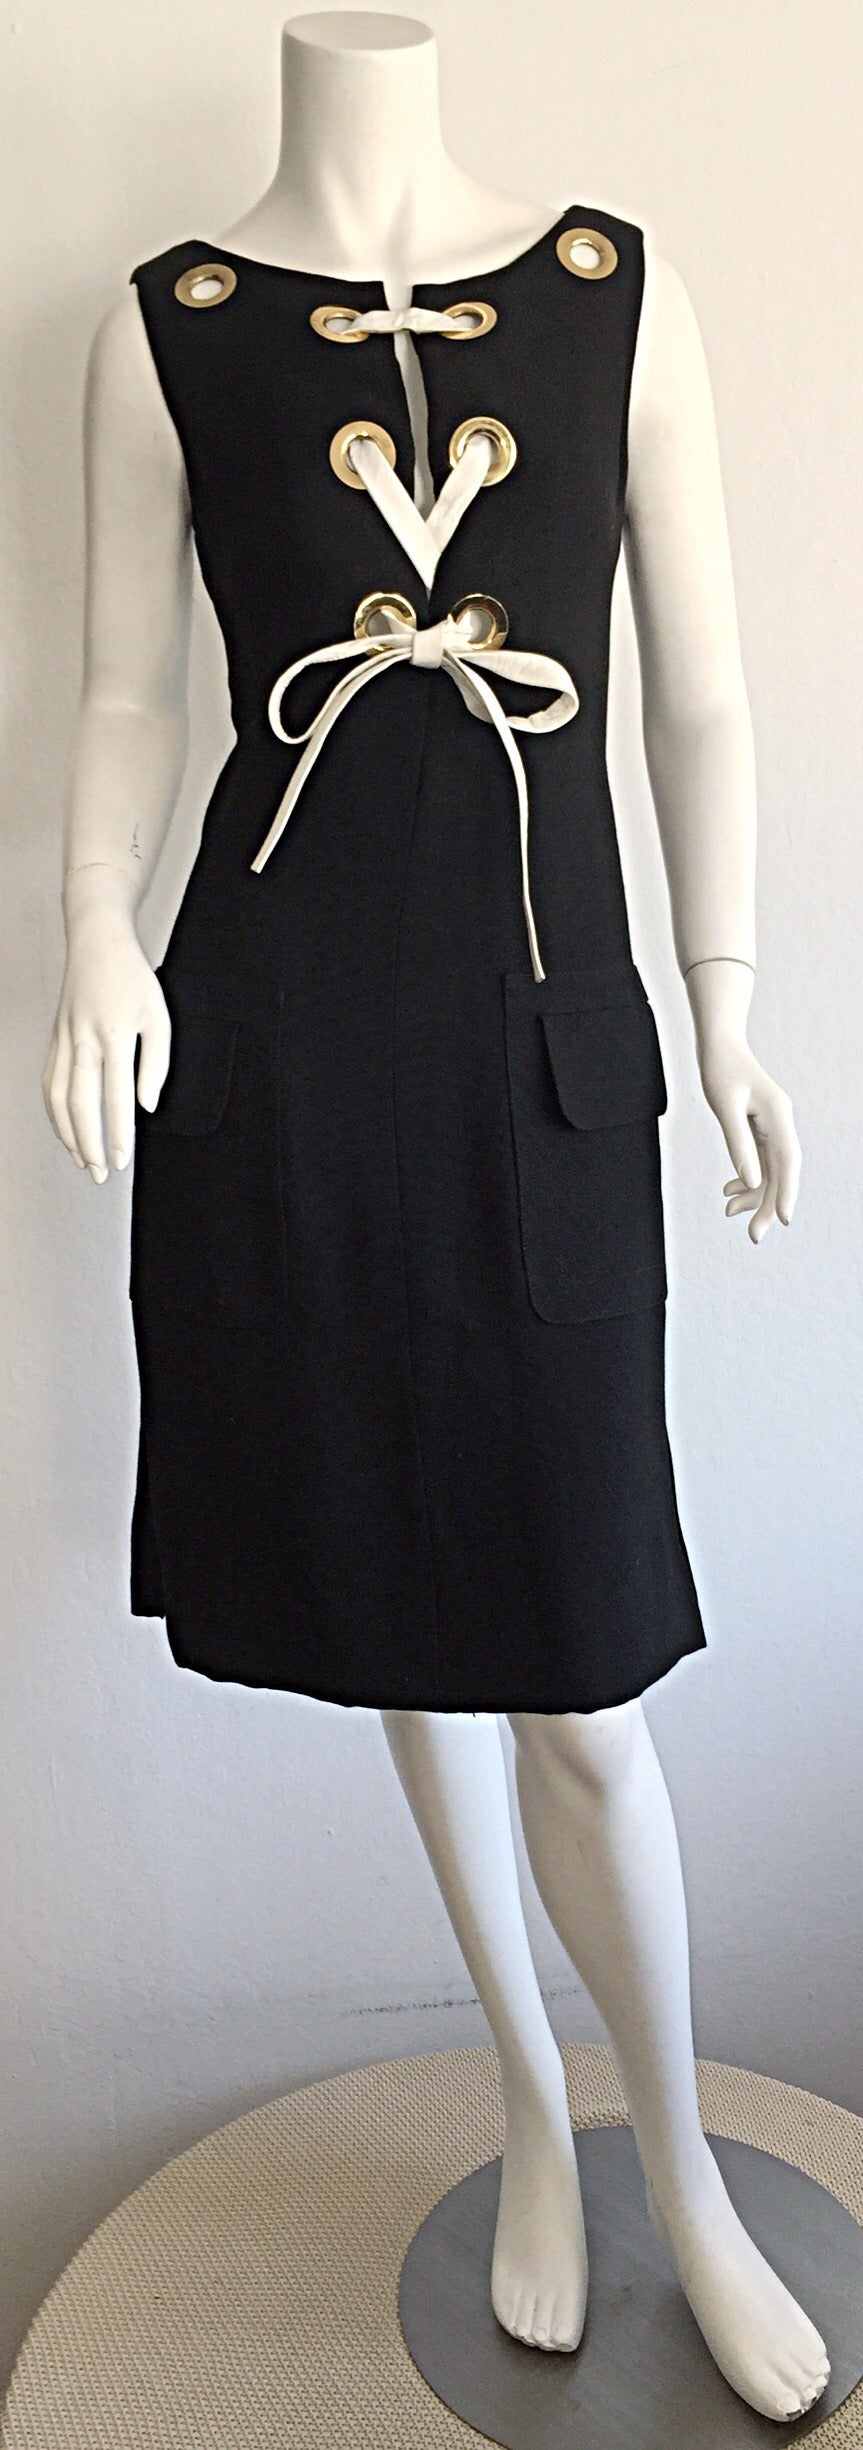 Rare 1960s Pierre Cardin Black Grommet Space Age 60s Vintage Linen Shift Dress 3